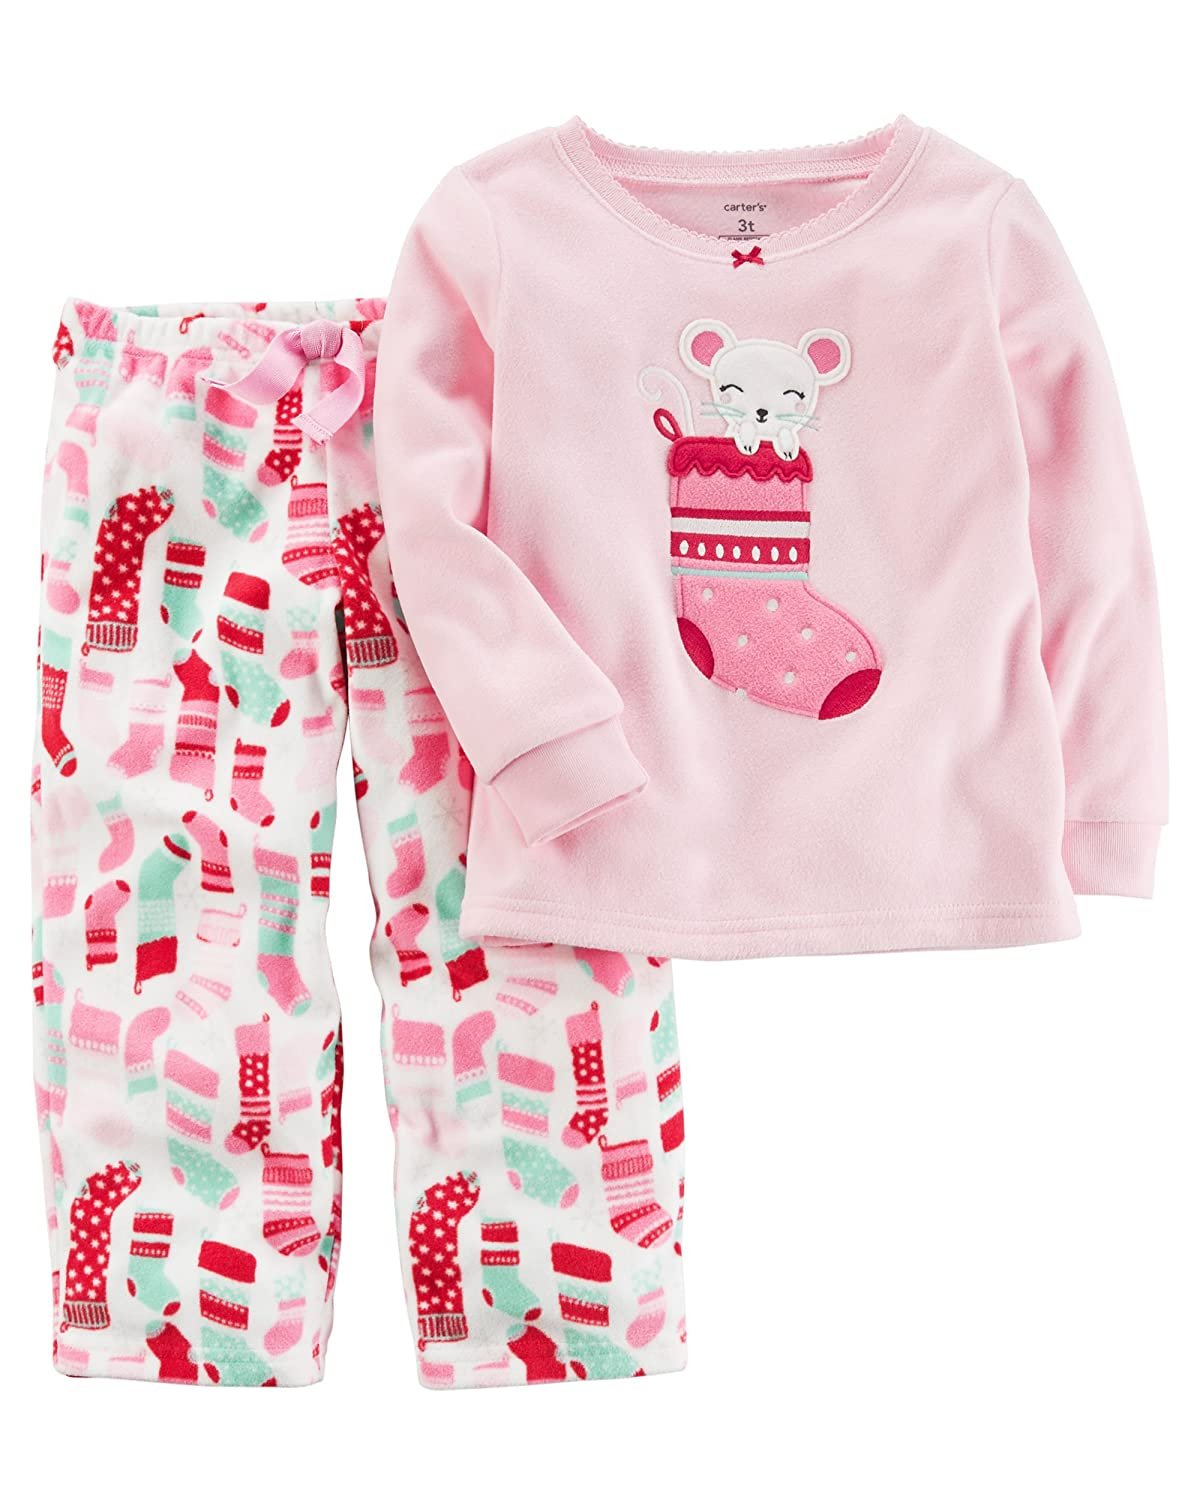 Carters Girls 2T-4T Mouse Stocking Fleece Pajamas